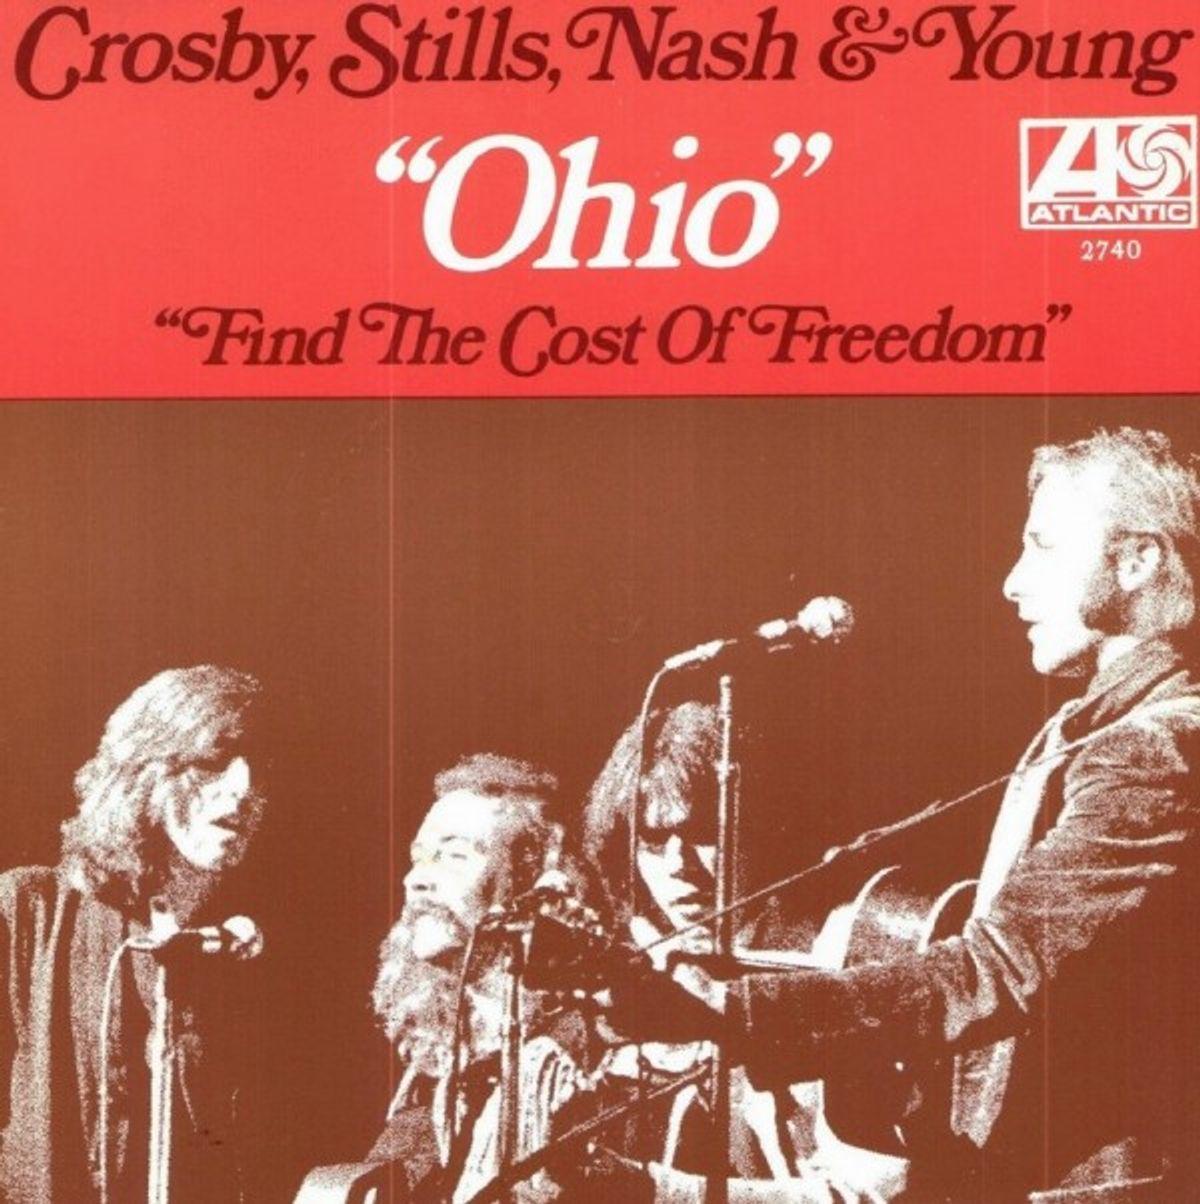 #DisasterSongs - Crosby, Stills, Nash & Young - Ohio (1970)